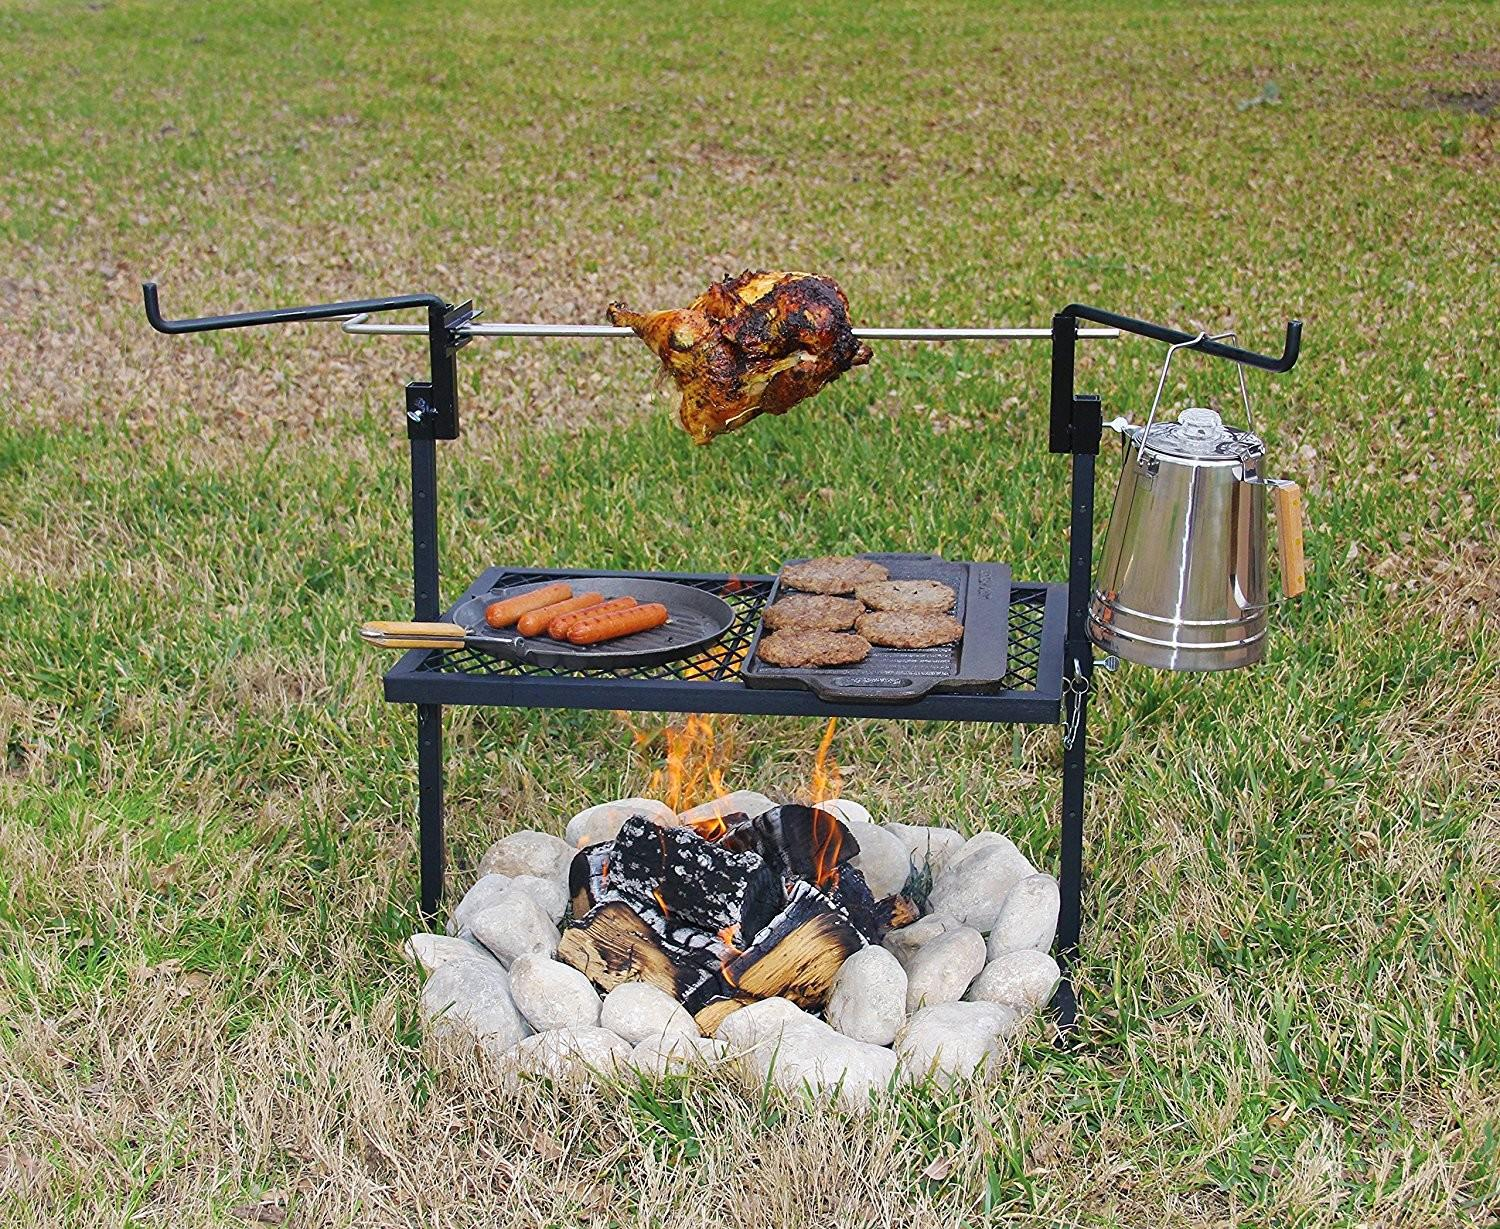 Campfire Cooking Equipment Can Live Without